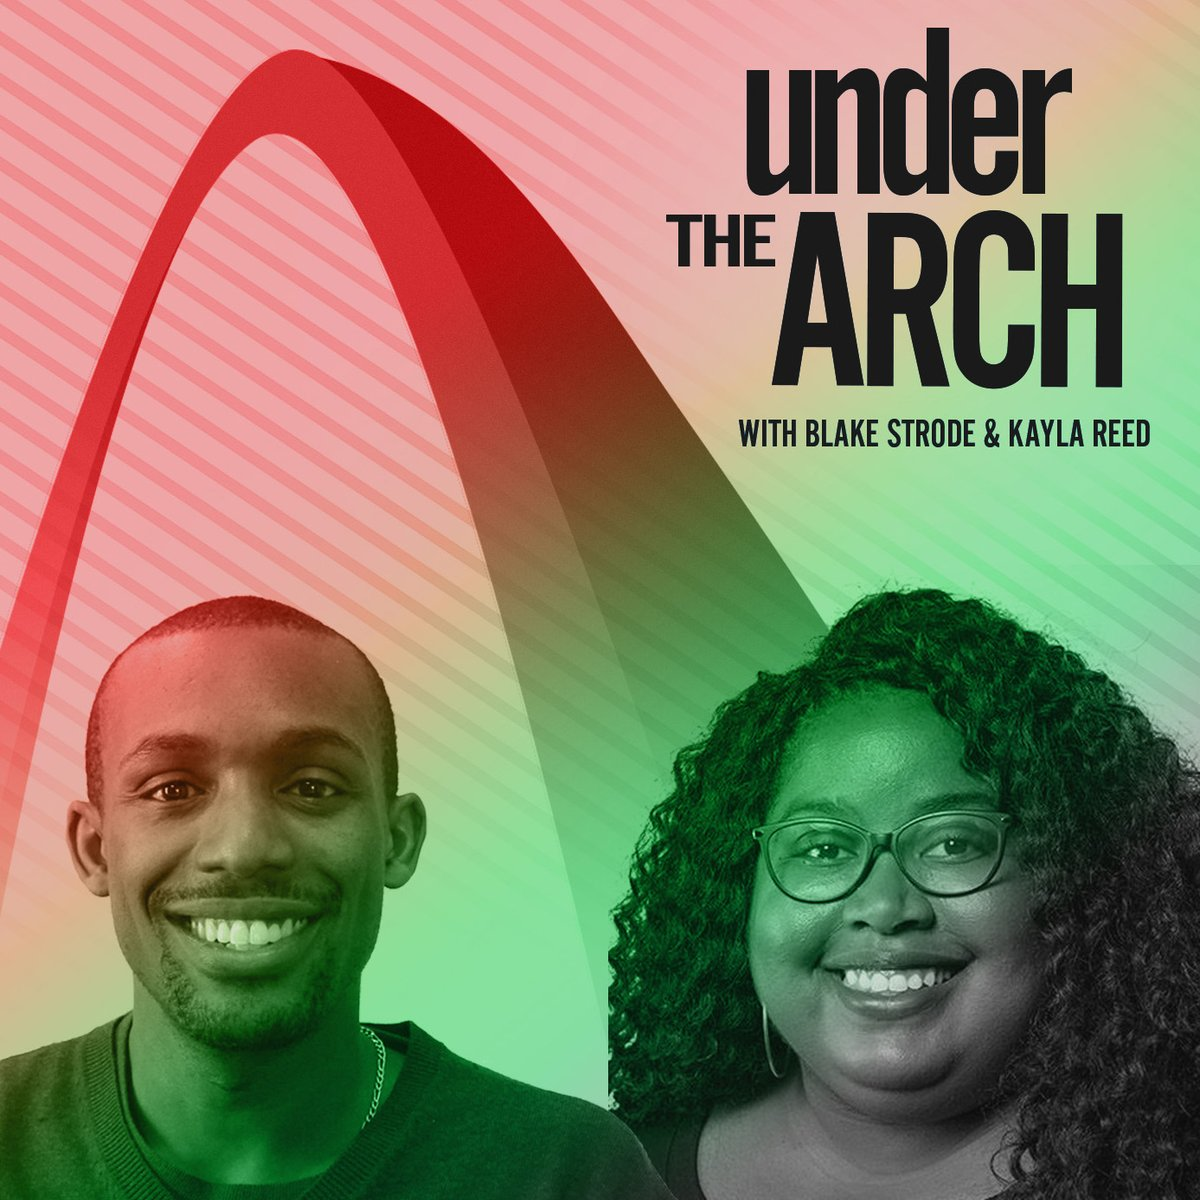 A new Black History Month special episode is now live! Tune in now to a conversation on St. Louis Black history ft. Gwen Moore, Curator of Urban Landscape and Community Identity at the Missouri History   Museum #UnderTheArchPod https://soundcloud.com/archcitydefenders/s2-e2-black-history-ft-gwen-moore…pic.twitter.com/PIIbVQGVn4